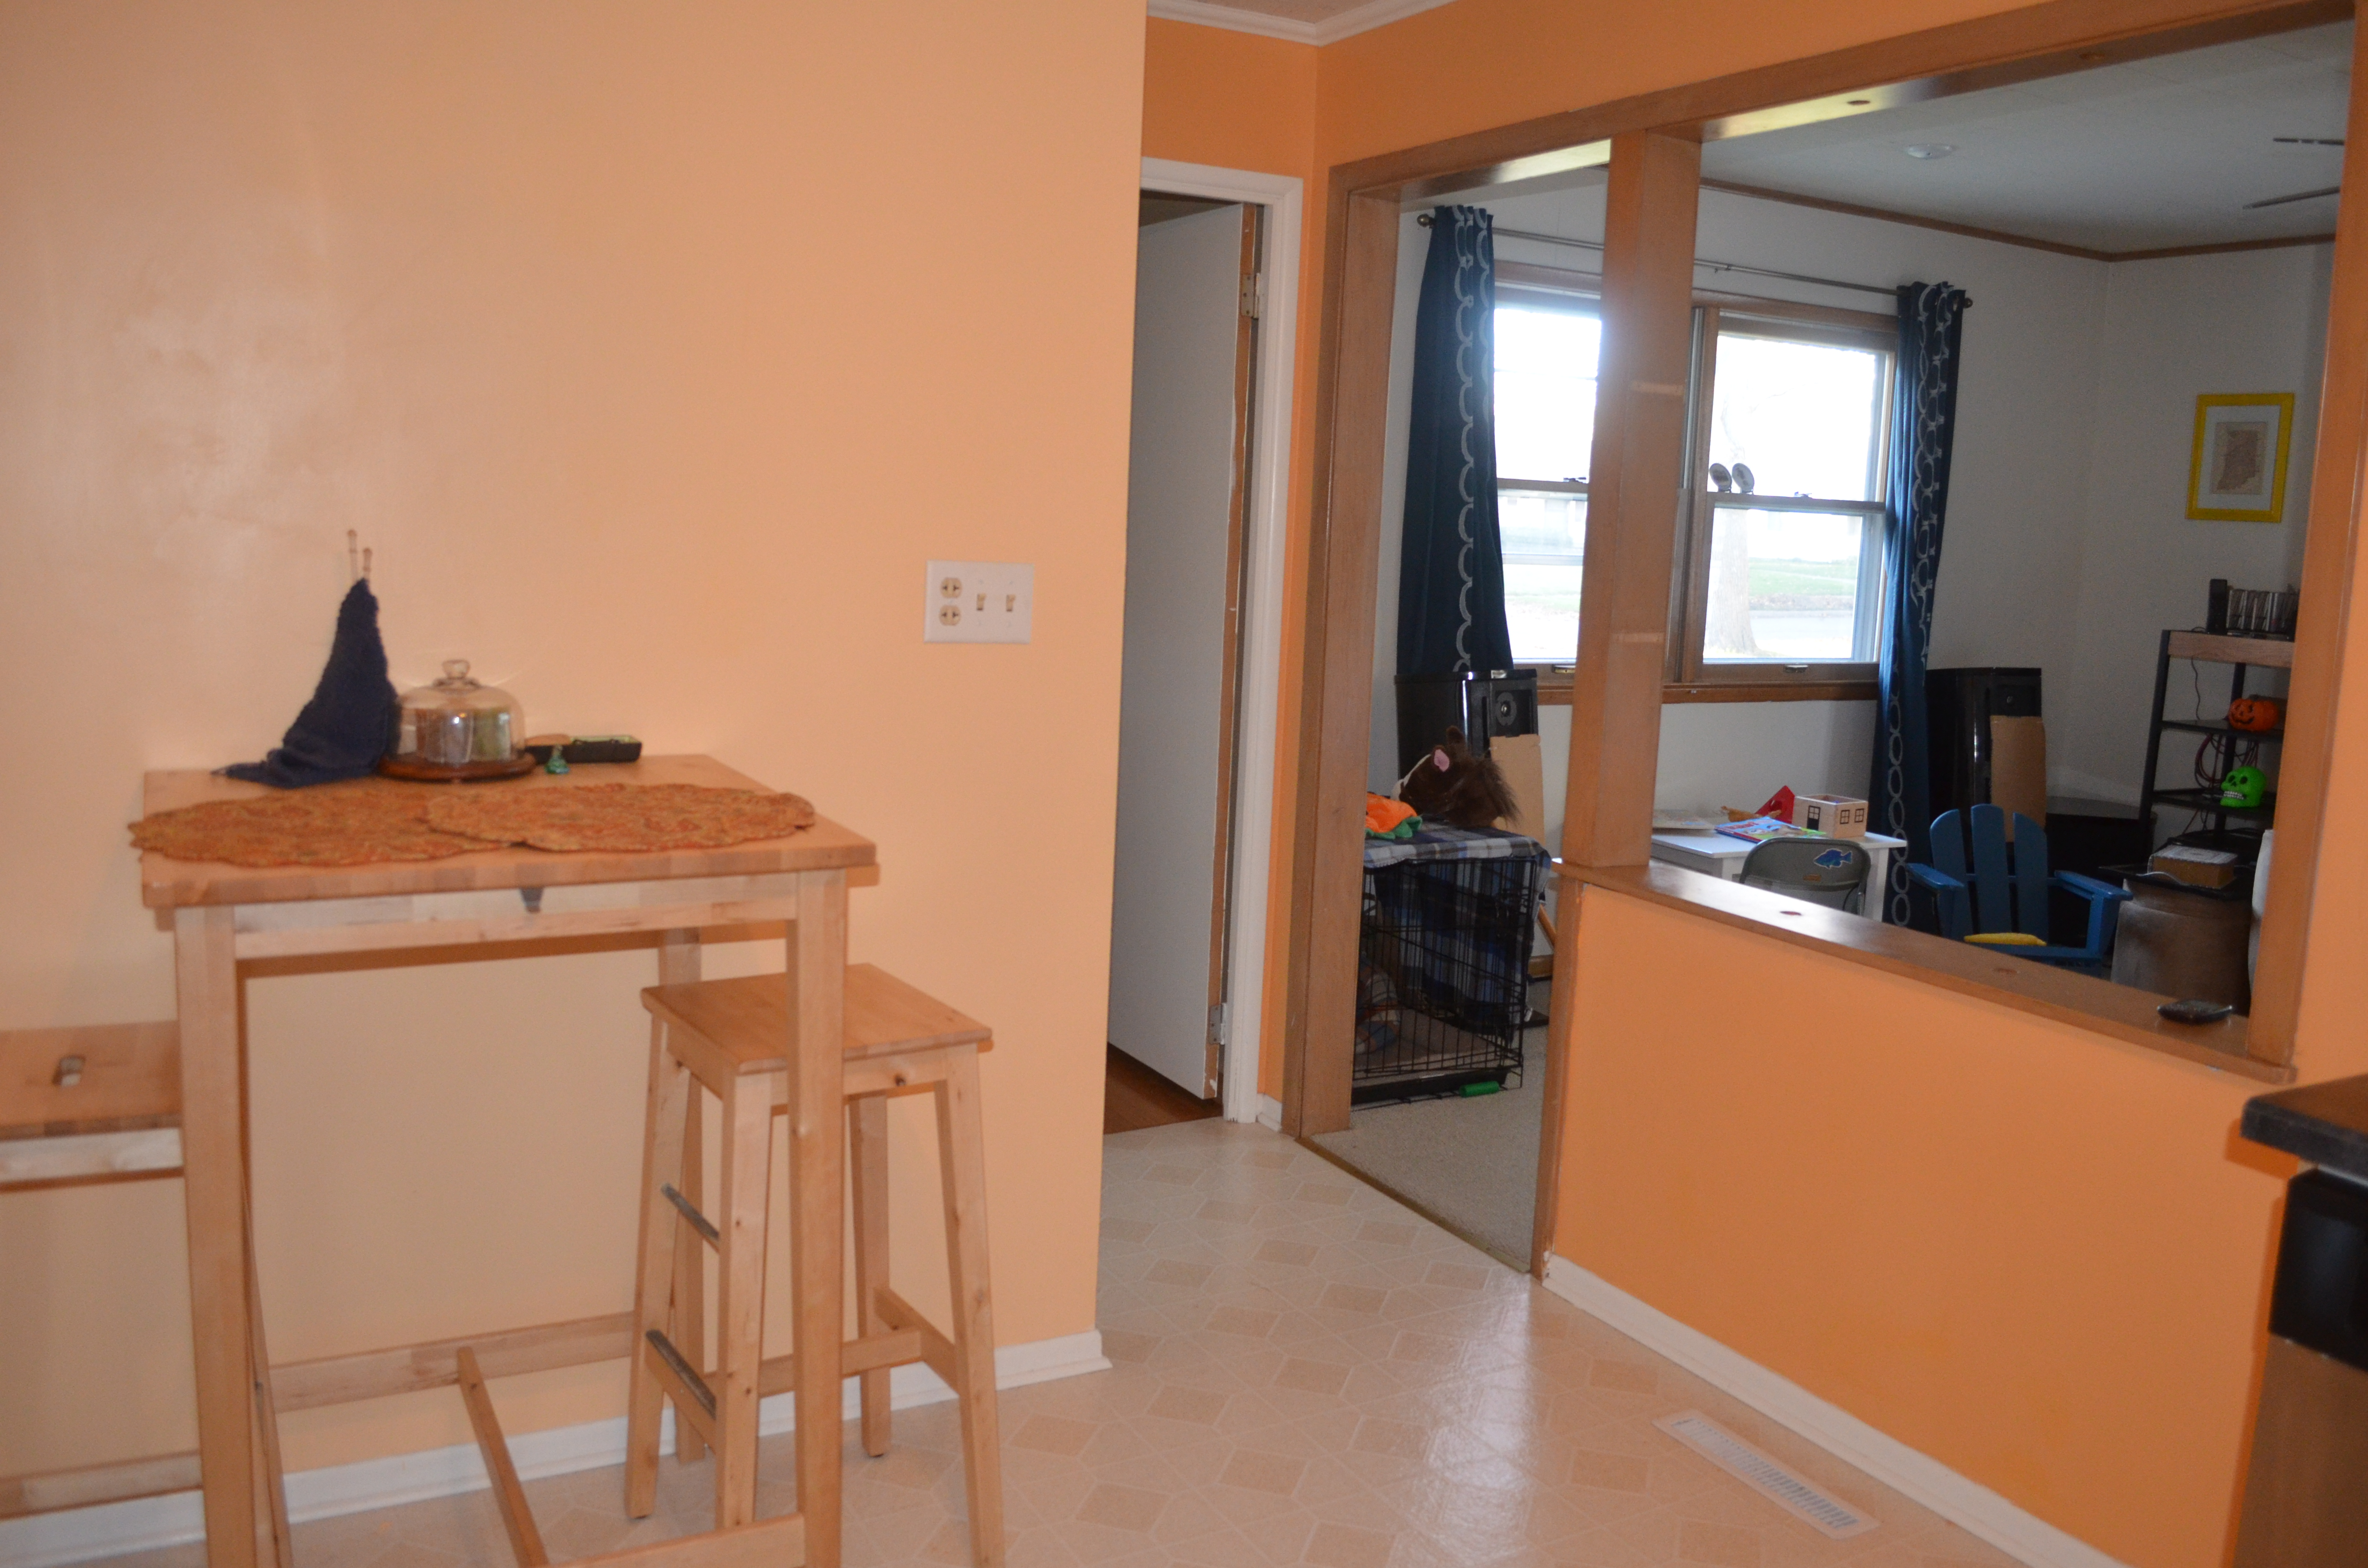 Before and after the open door - Peach color kitchen ...